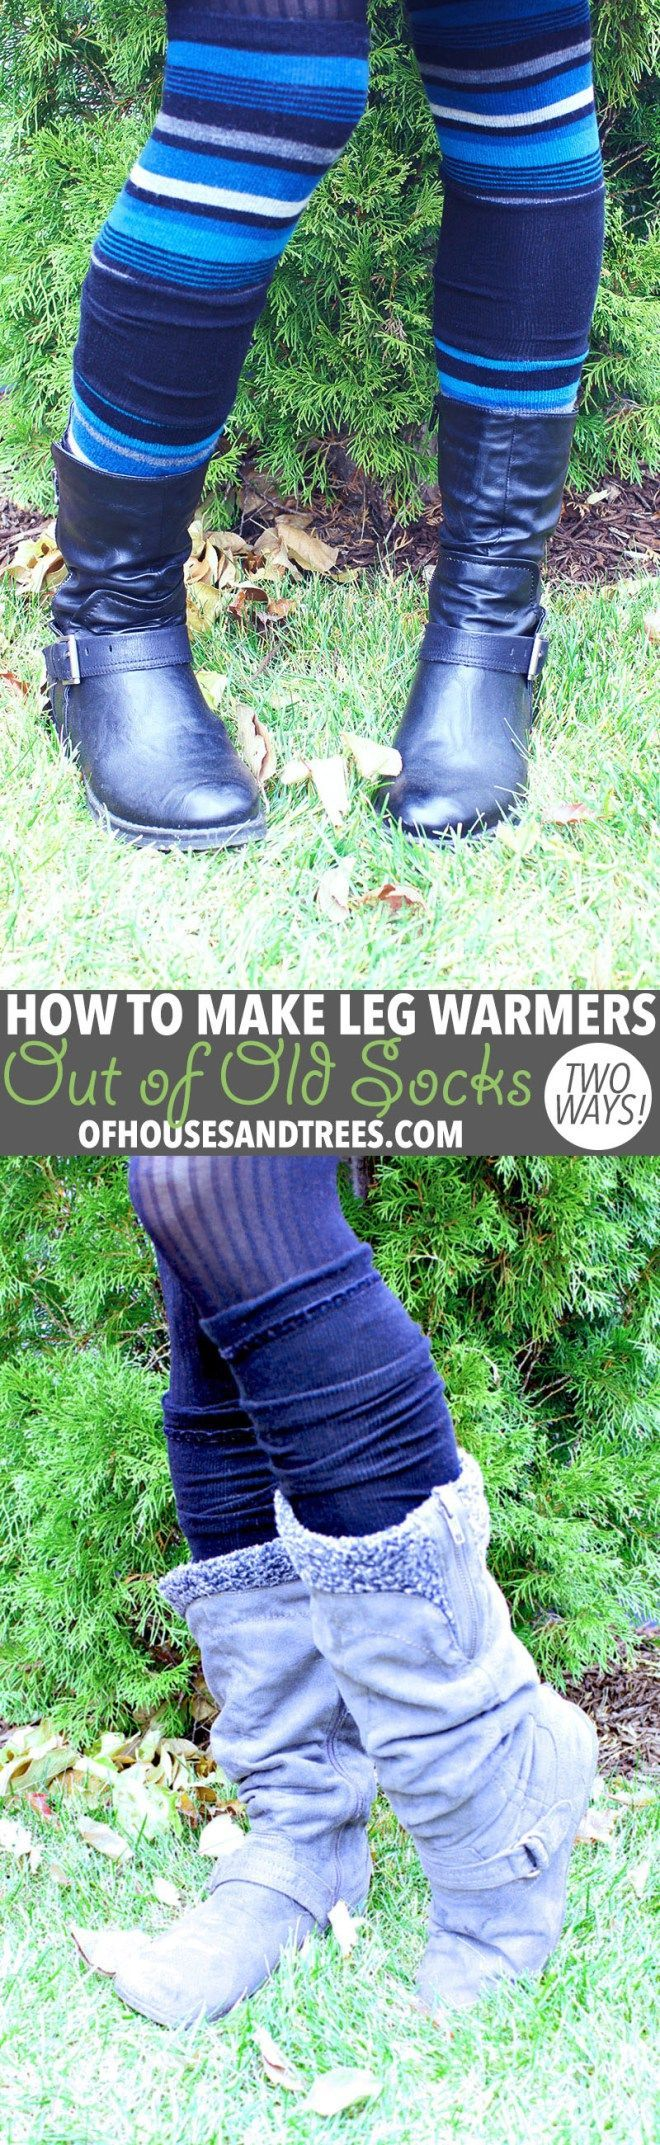 DIY Leg Warmers | Leg warmers aren't just for dancers. They keep the legs toasty and also look kind of cute, no? Here are two ways to make DIY leg warmers out of old socks!